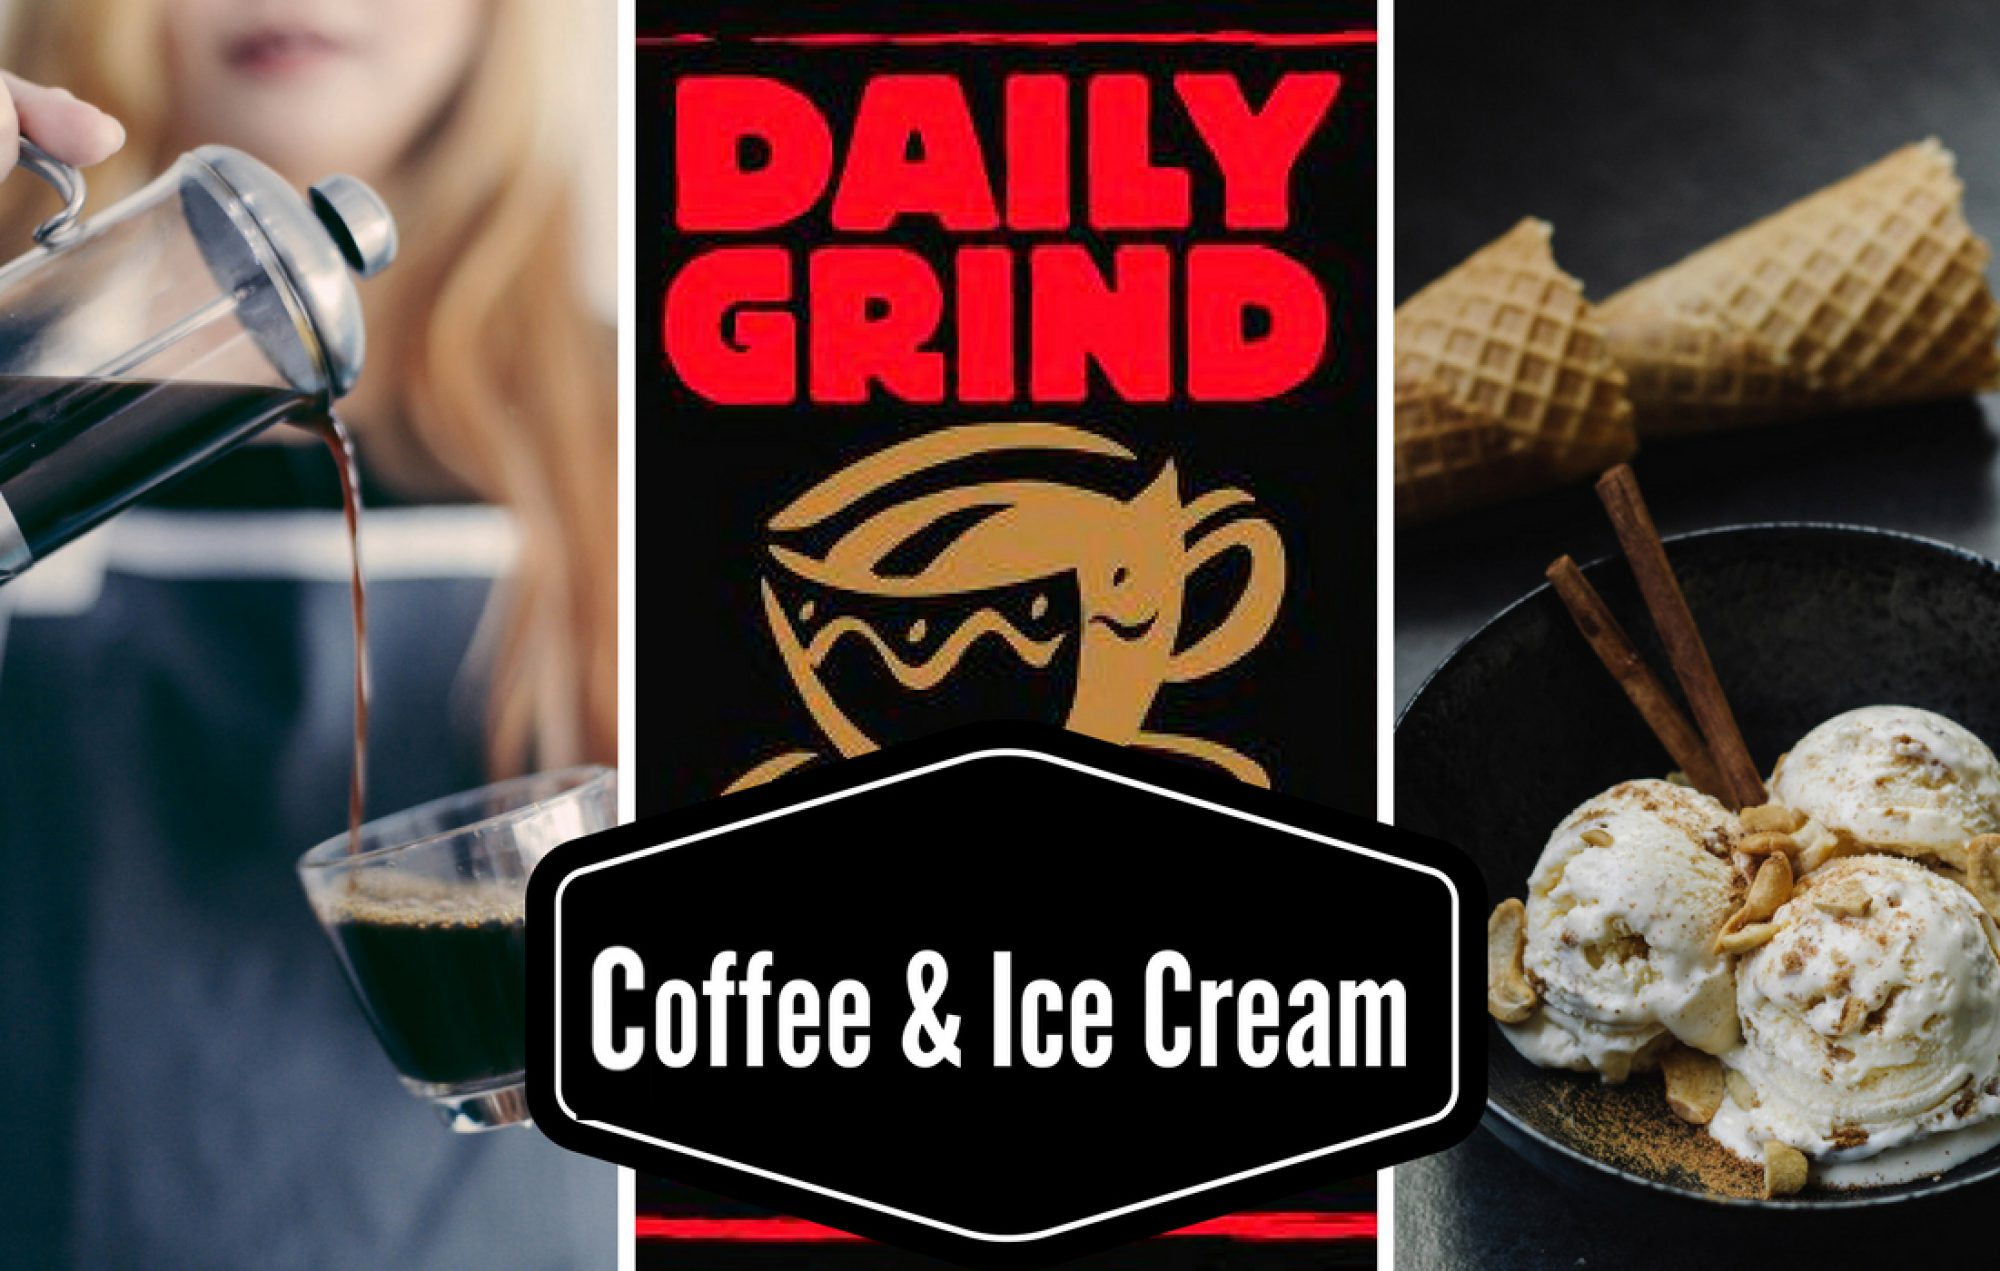 Daily Grind Coffee & Creamery